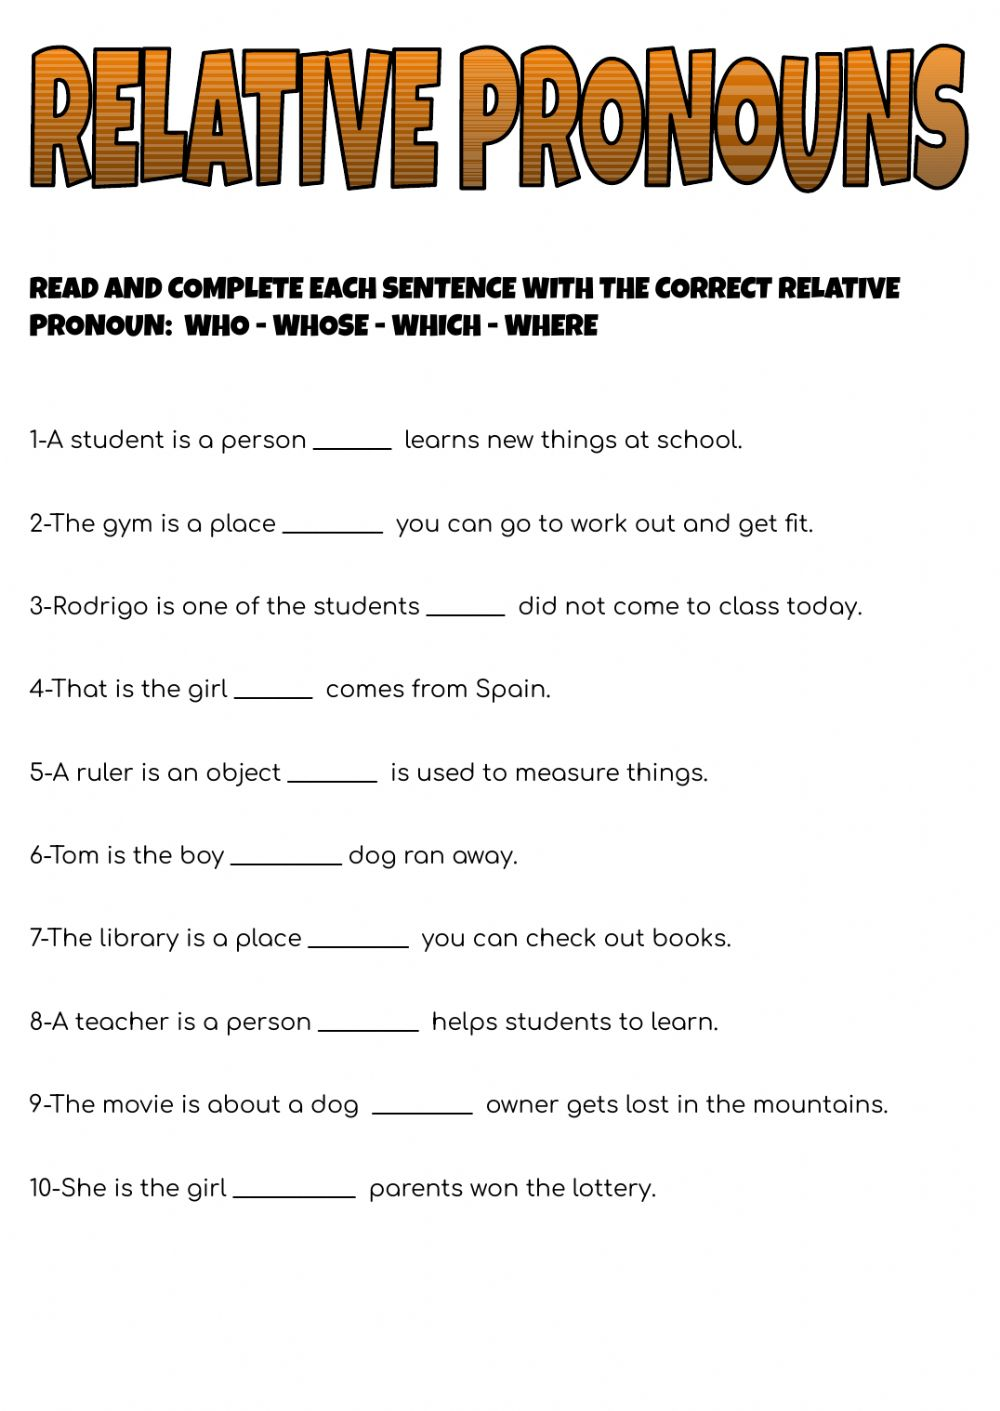 hight resolution of Relative pronouns online worksheet for 5TH GRADE